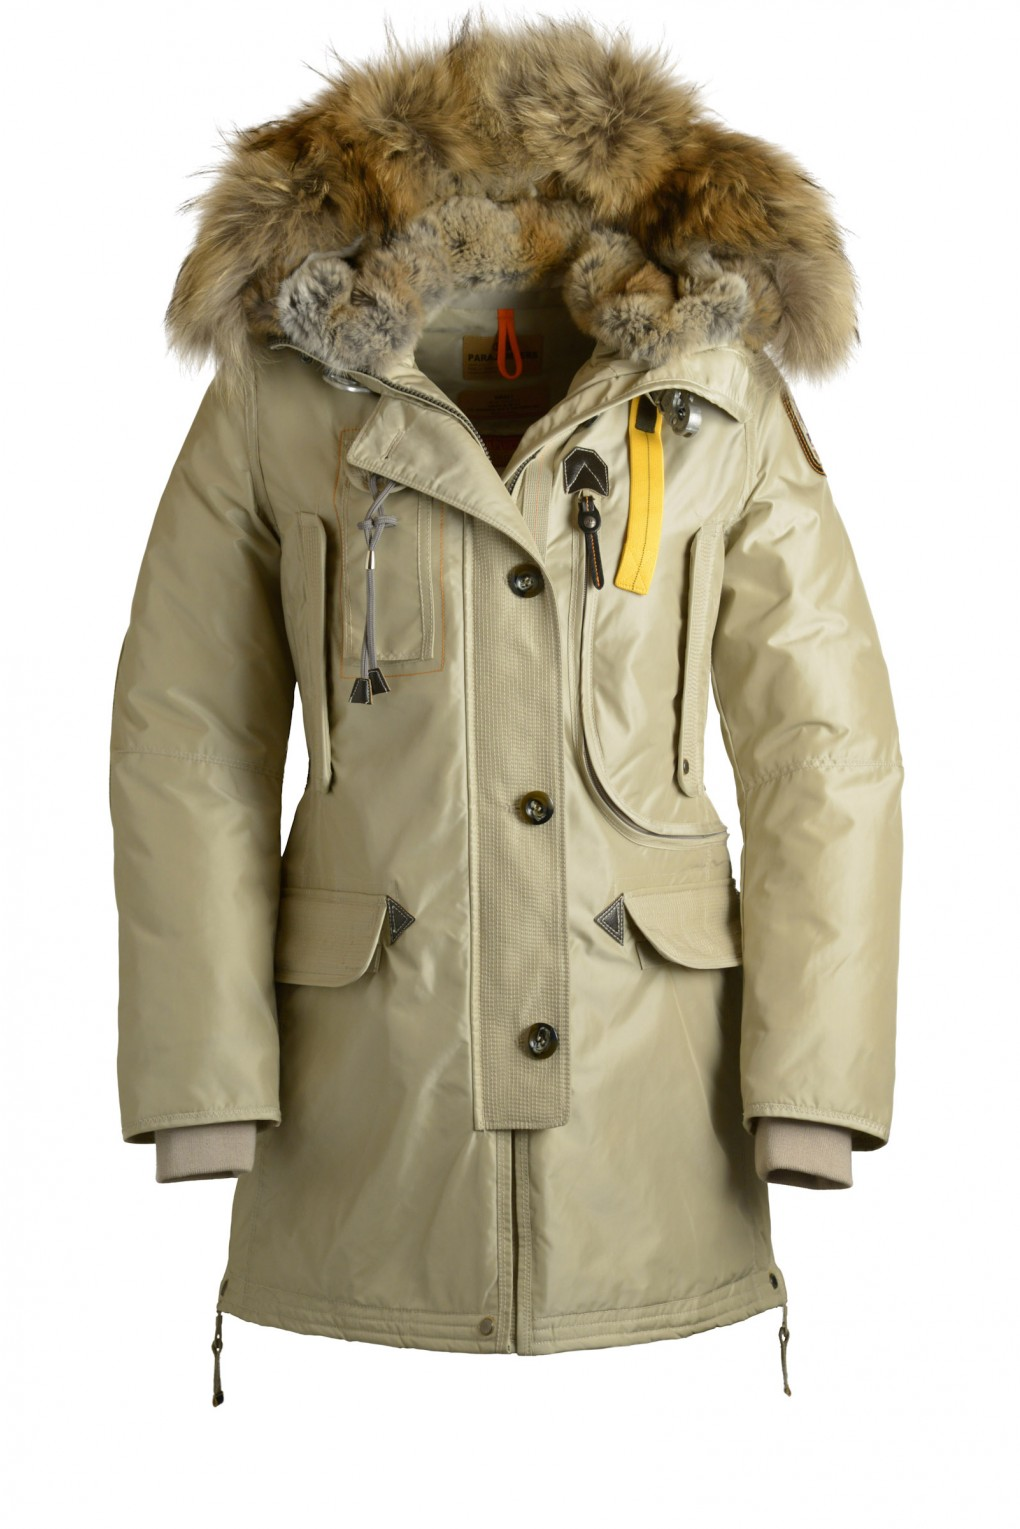 parajumpers KODIAK woman outerwear Sand